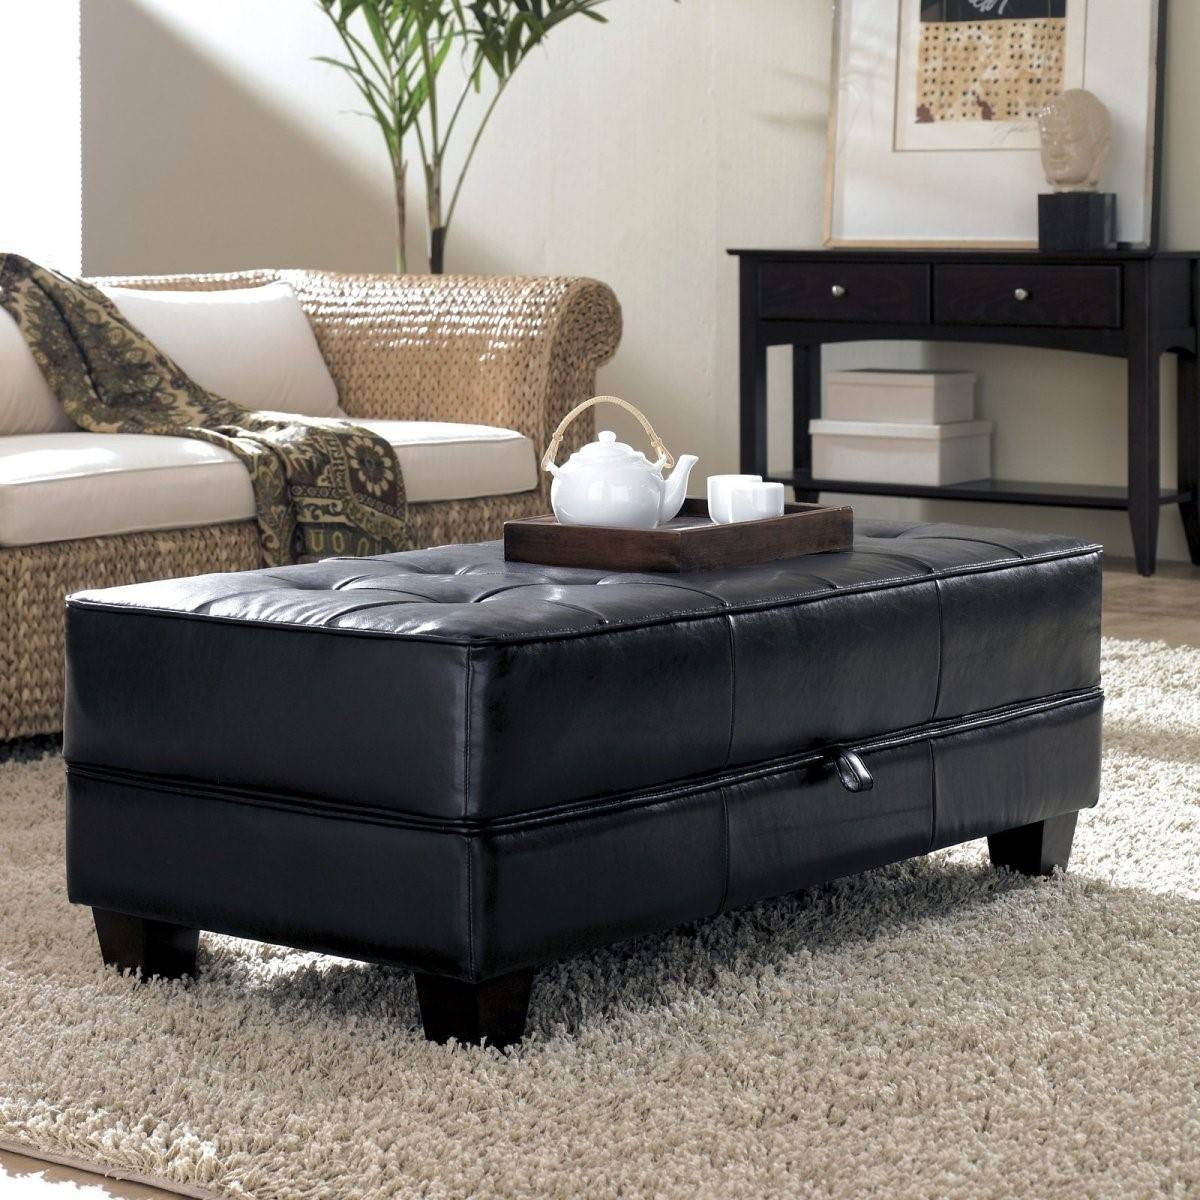 Furniture. Black Coffee Table With Storage Design Ideas: Rectangle intended for Black Coffee Tables With Storage (Image 21 of 30)